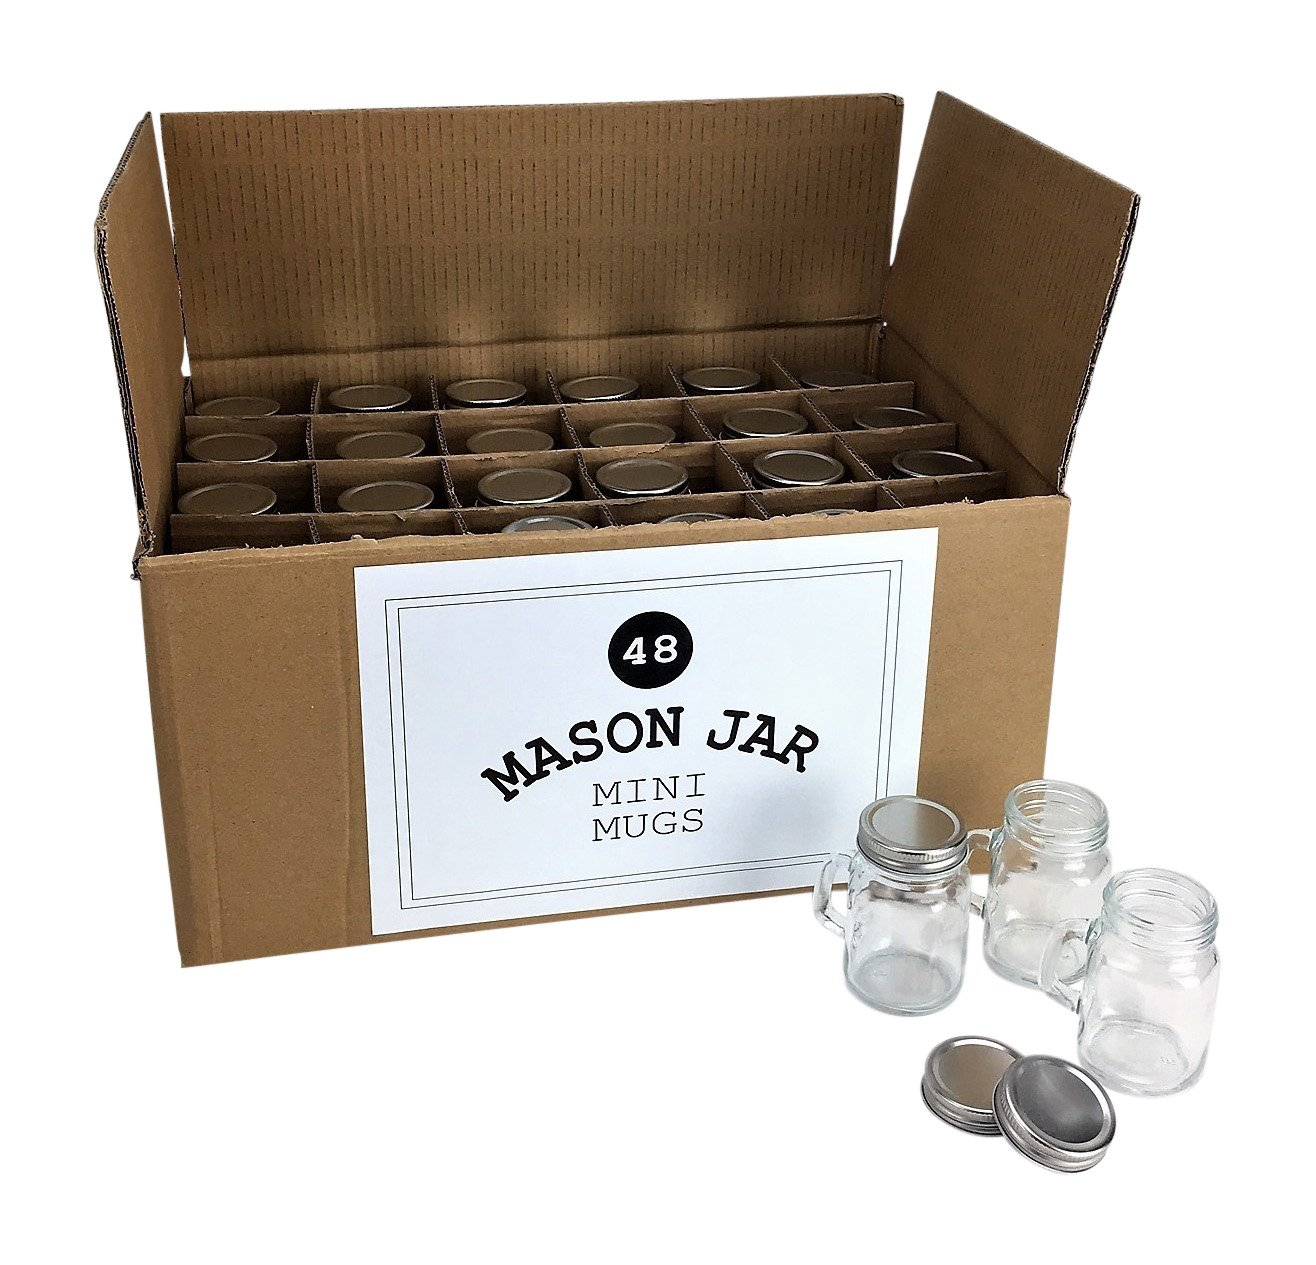 Mason Jar 4 Ounce Mugs - Set of 48 Glasses With Handles And Leak-Proof Lids - Great For Shots, Drinks, Favors, Candles And Crafts by Mason Jar Warehouse